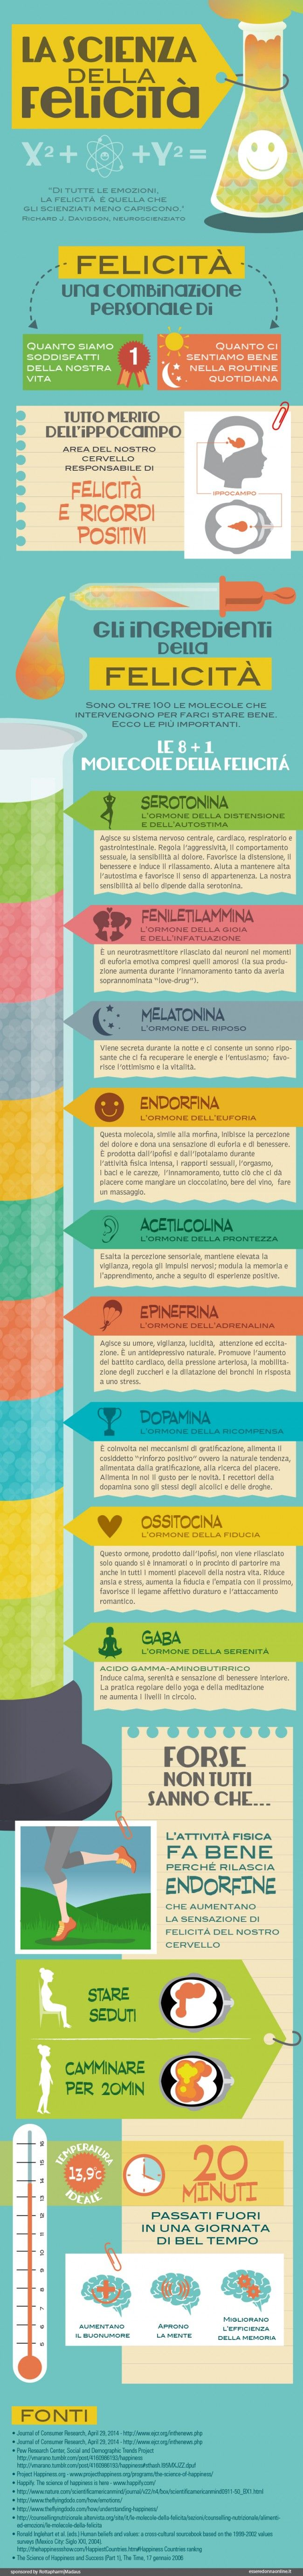 La scienza della felicità -- infographics designed for esseredonnaonline.it- illustrated by Alice Kle Borghi, kleland.com